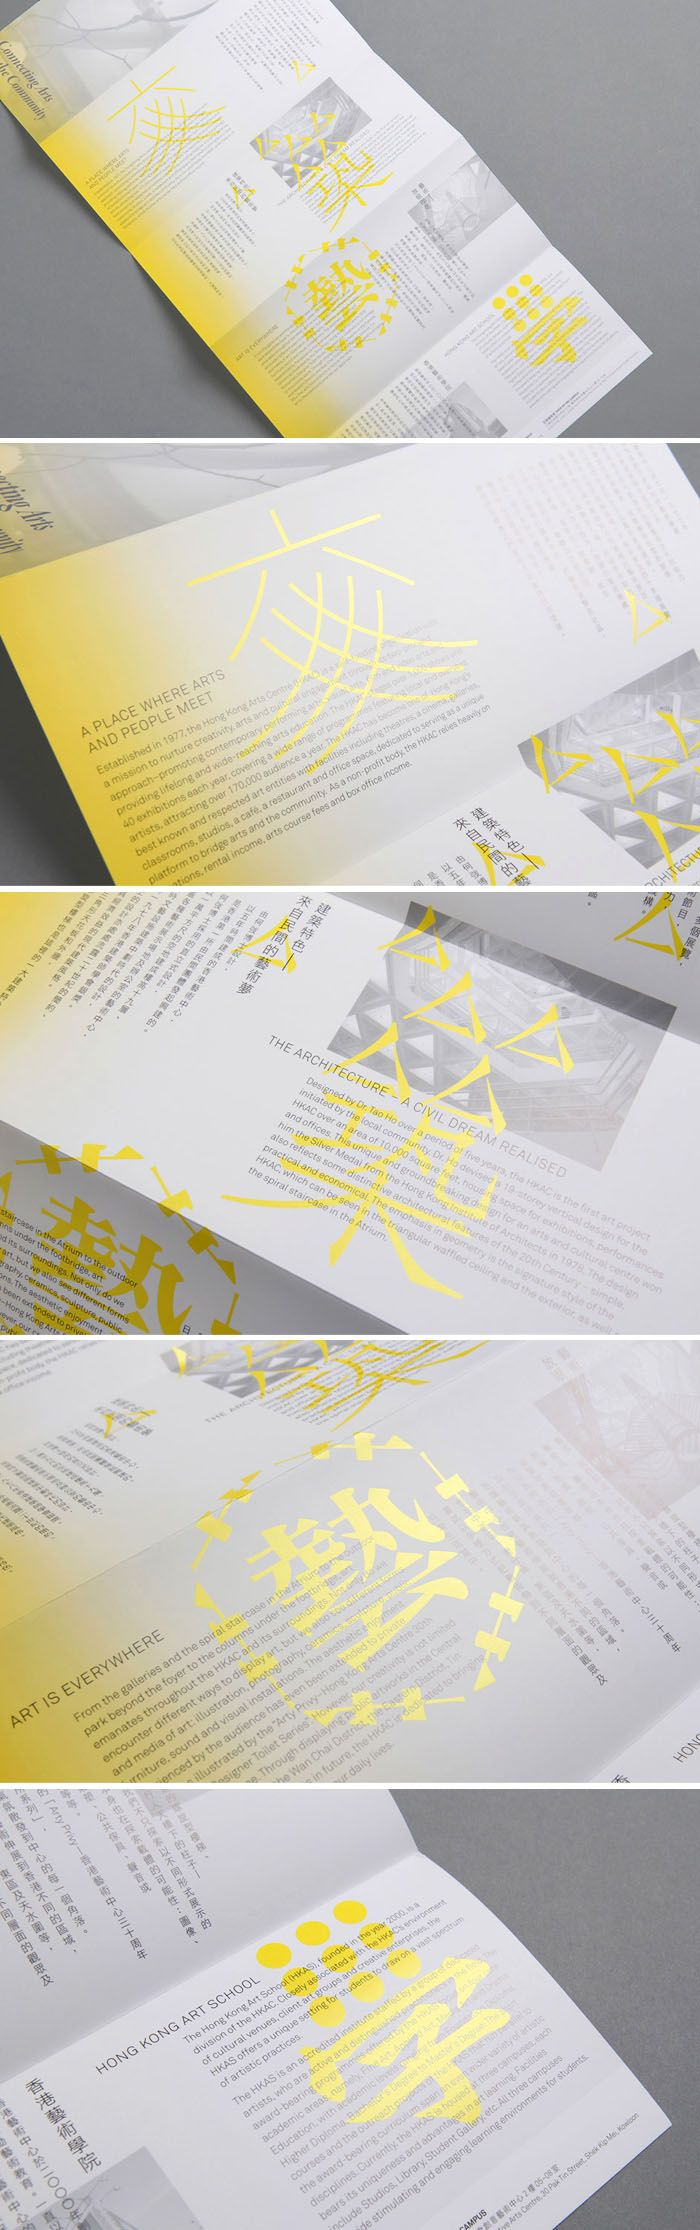 香港藝術中心 HKAC leaflet | Trilingua 叄語, 2011  - Love the use of colour gradient, and interposition of the symbols